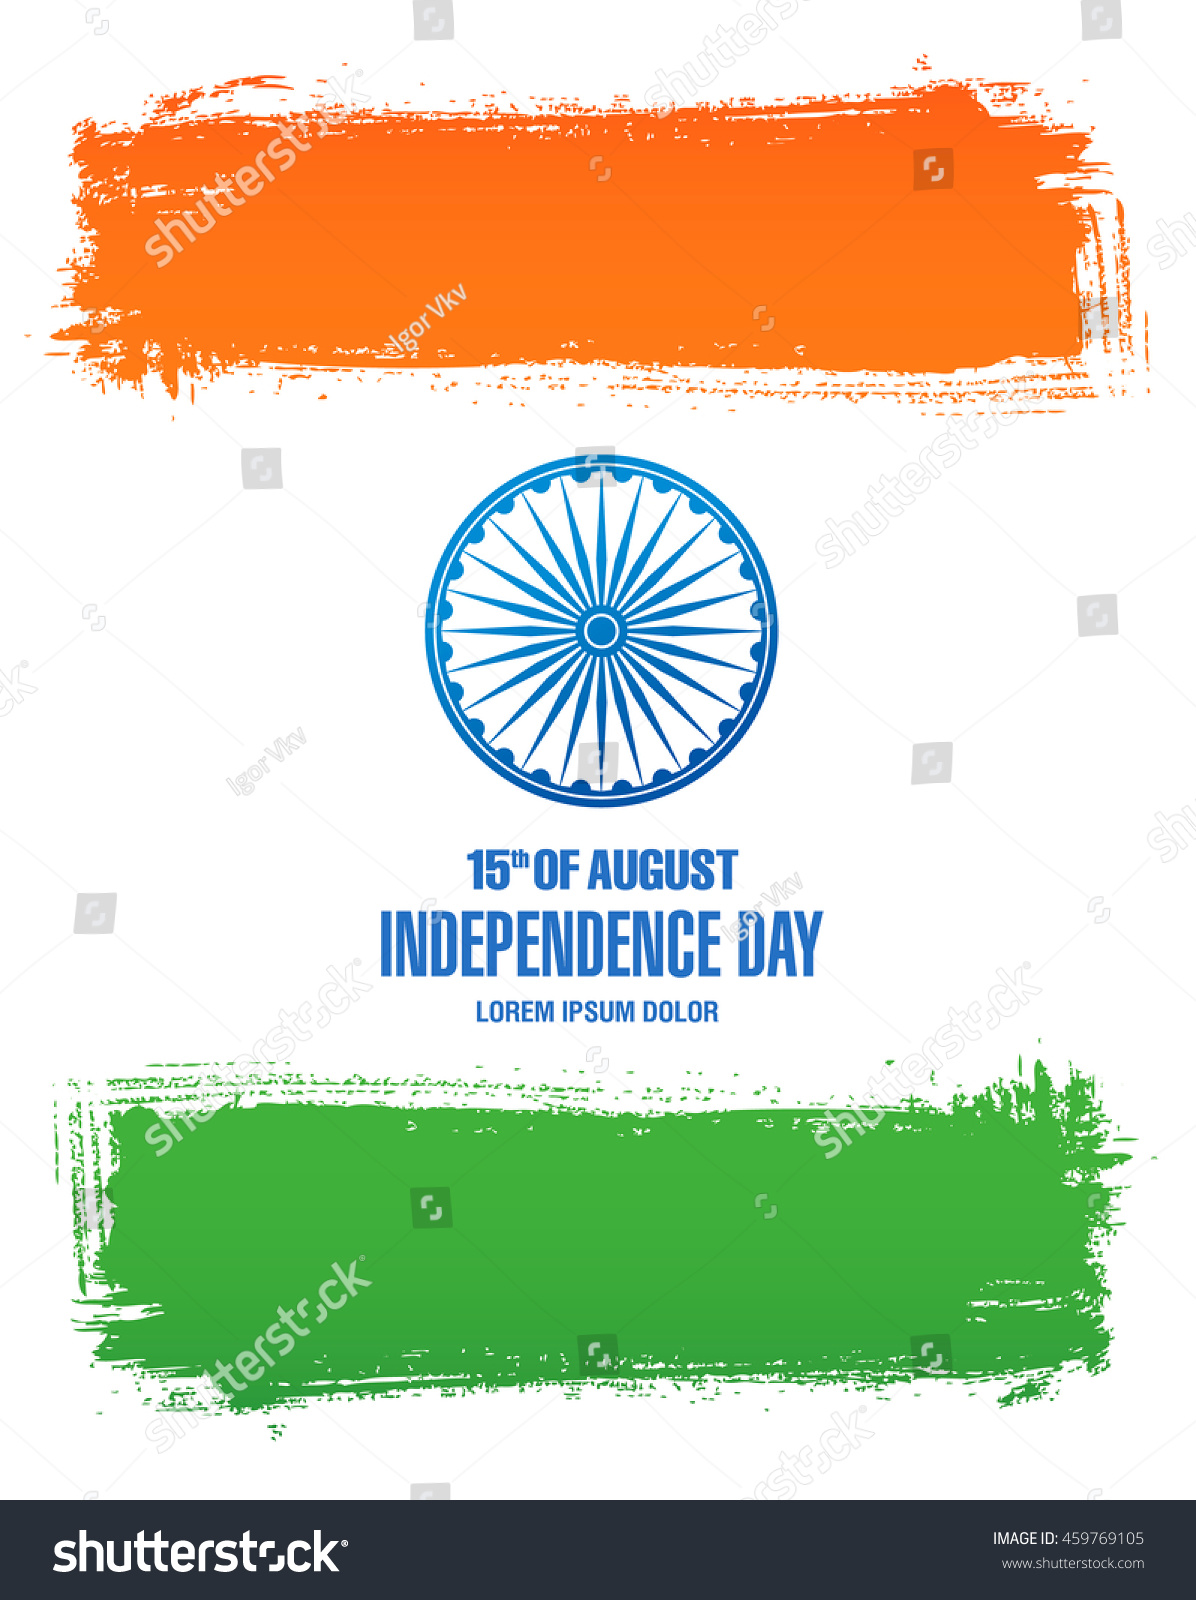 independence day of india-#28